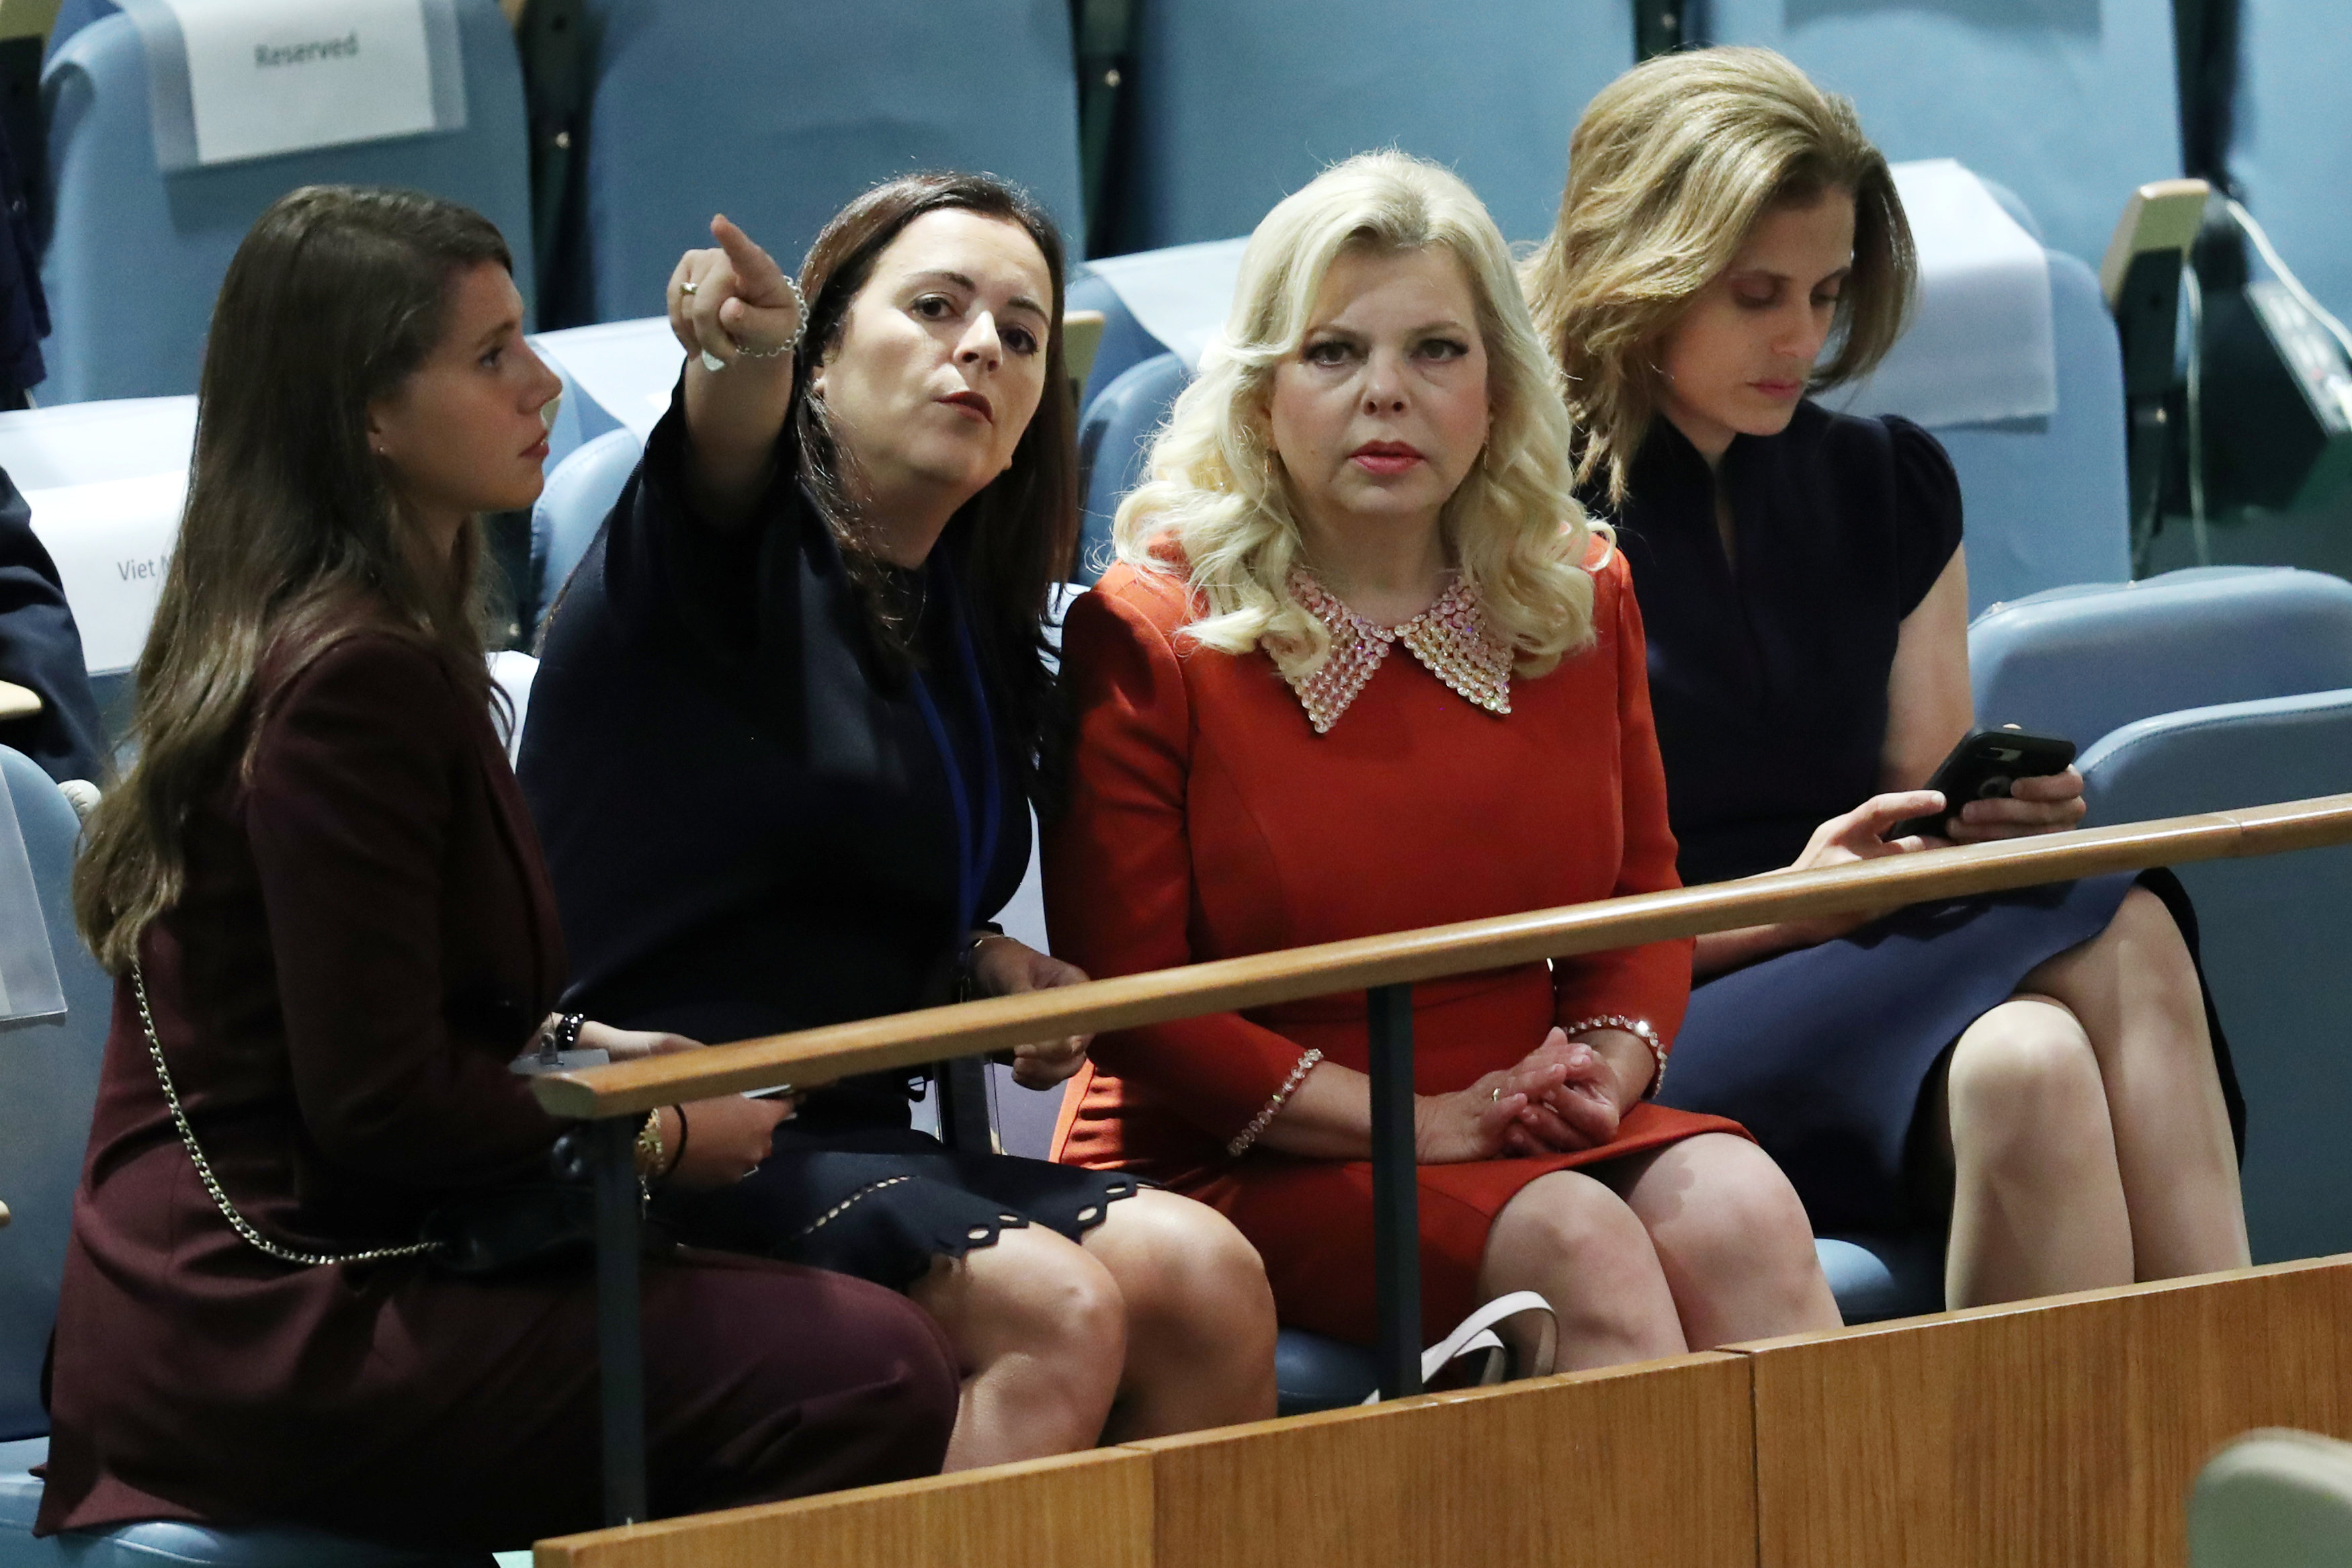 Israeli first lady Sara Netanyahu (2nd from R) attends the 73rd session of the United Nations General Assembly at U.N. headquarters in New York, U.S., September 27, 2018. REUTERS